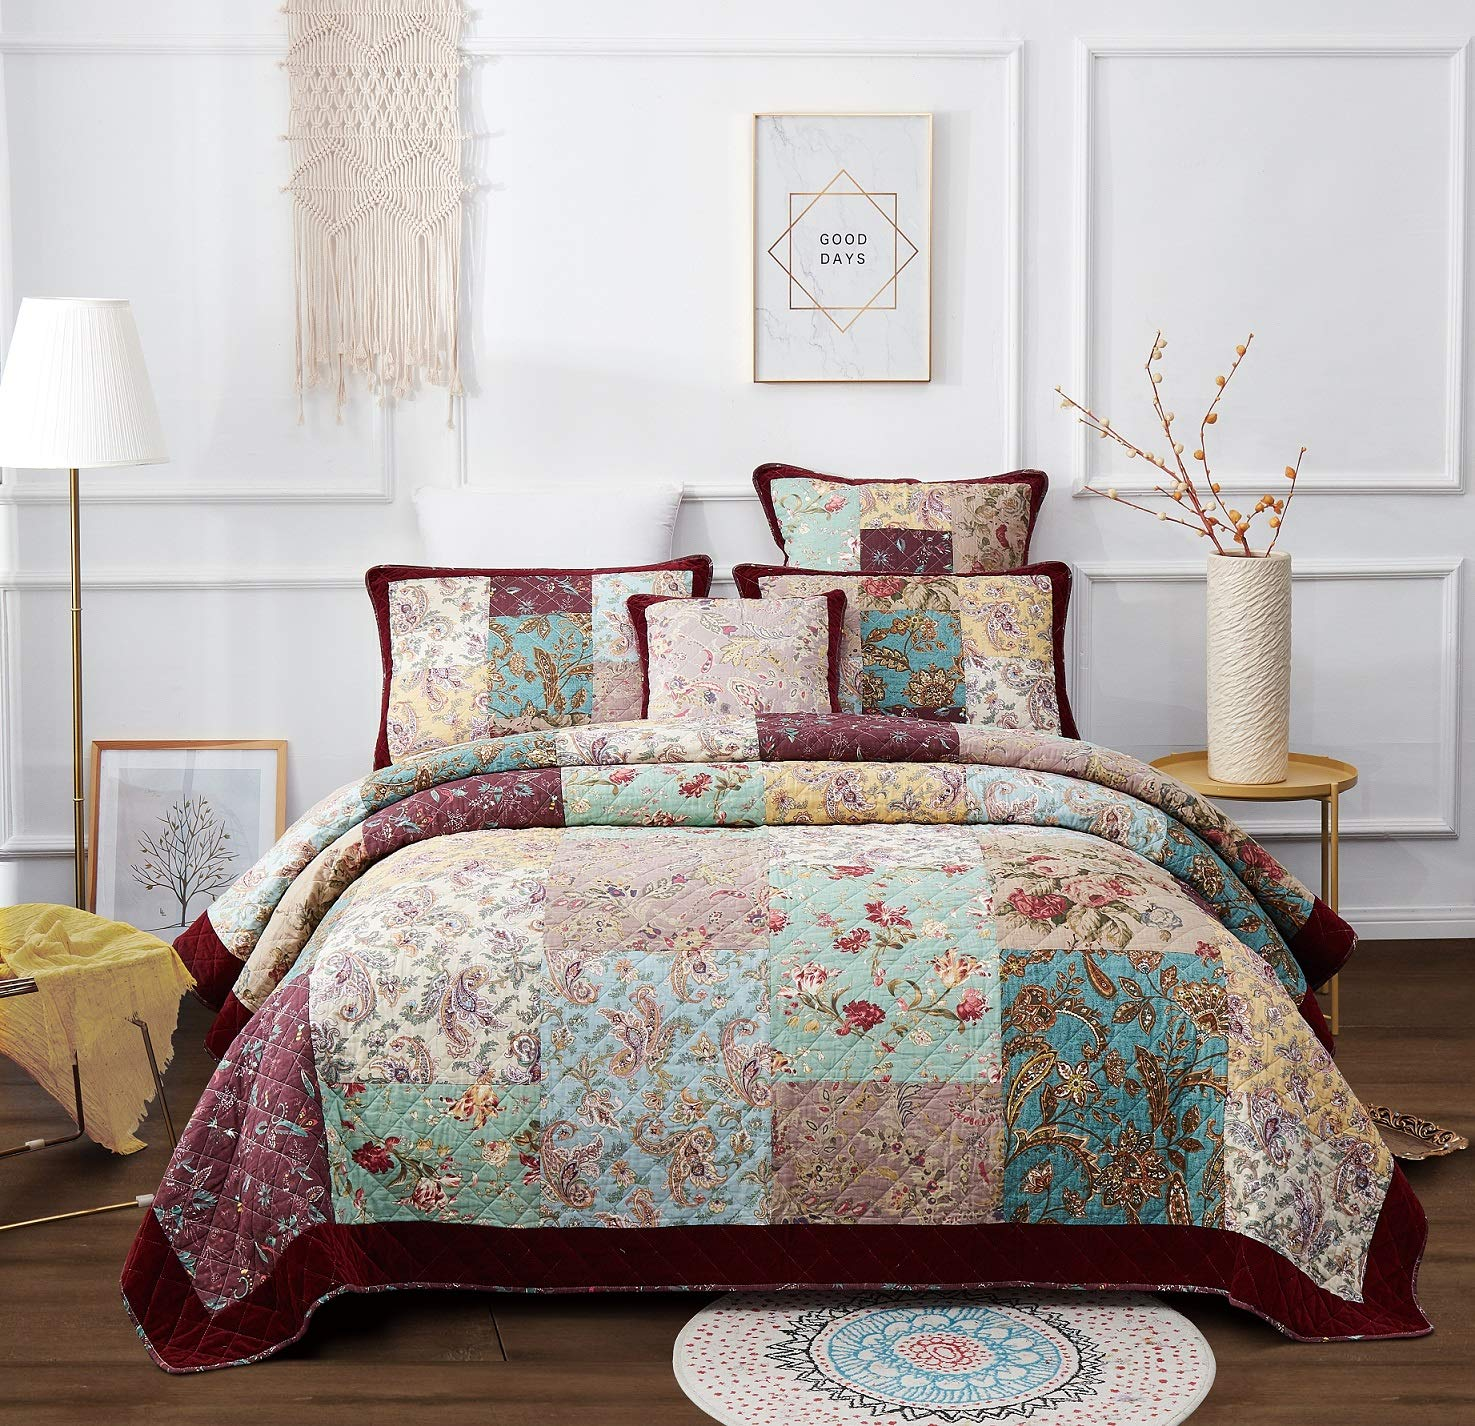 DaDa Bedding Bohemian Patchwork Bedspread - Burgundy Wine Velvety Trim - Vintage Floral Roses Paisley - Bright Vibrant Multi-Colorful Quilted Set - King - 3-Pieces